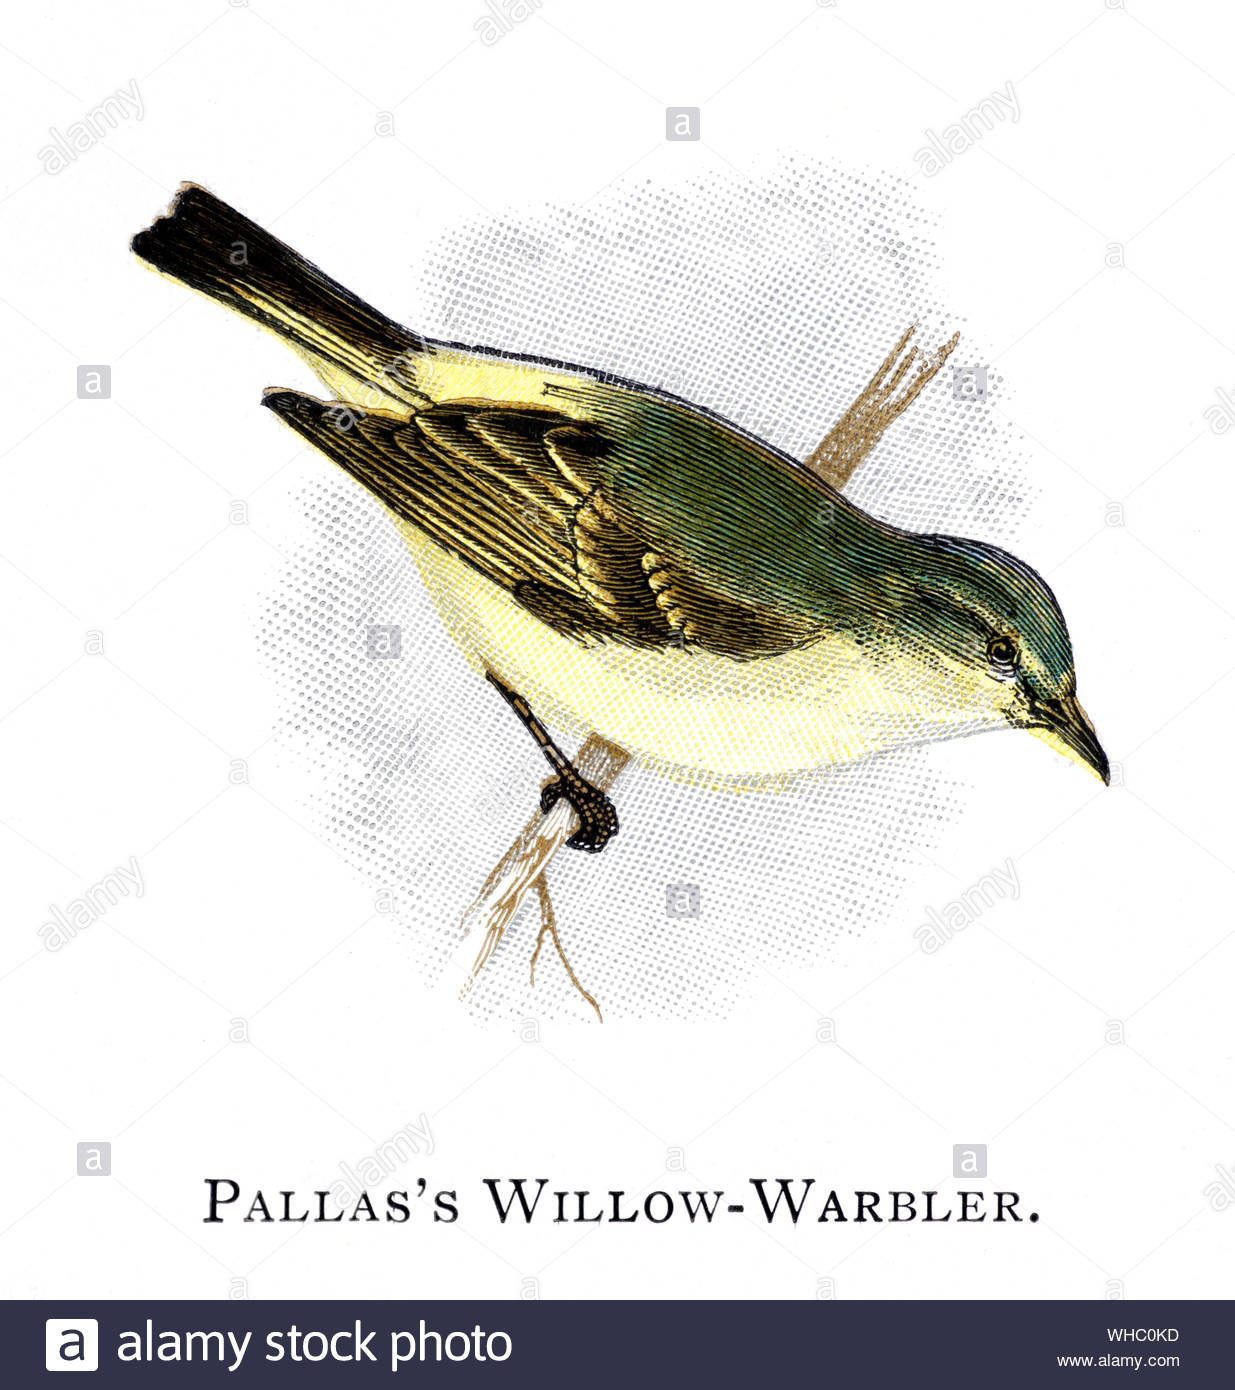 Pallas's Willow Warbler (Phylloscopus proregulus), vintage illustration published in 1898 Stock Photo